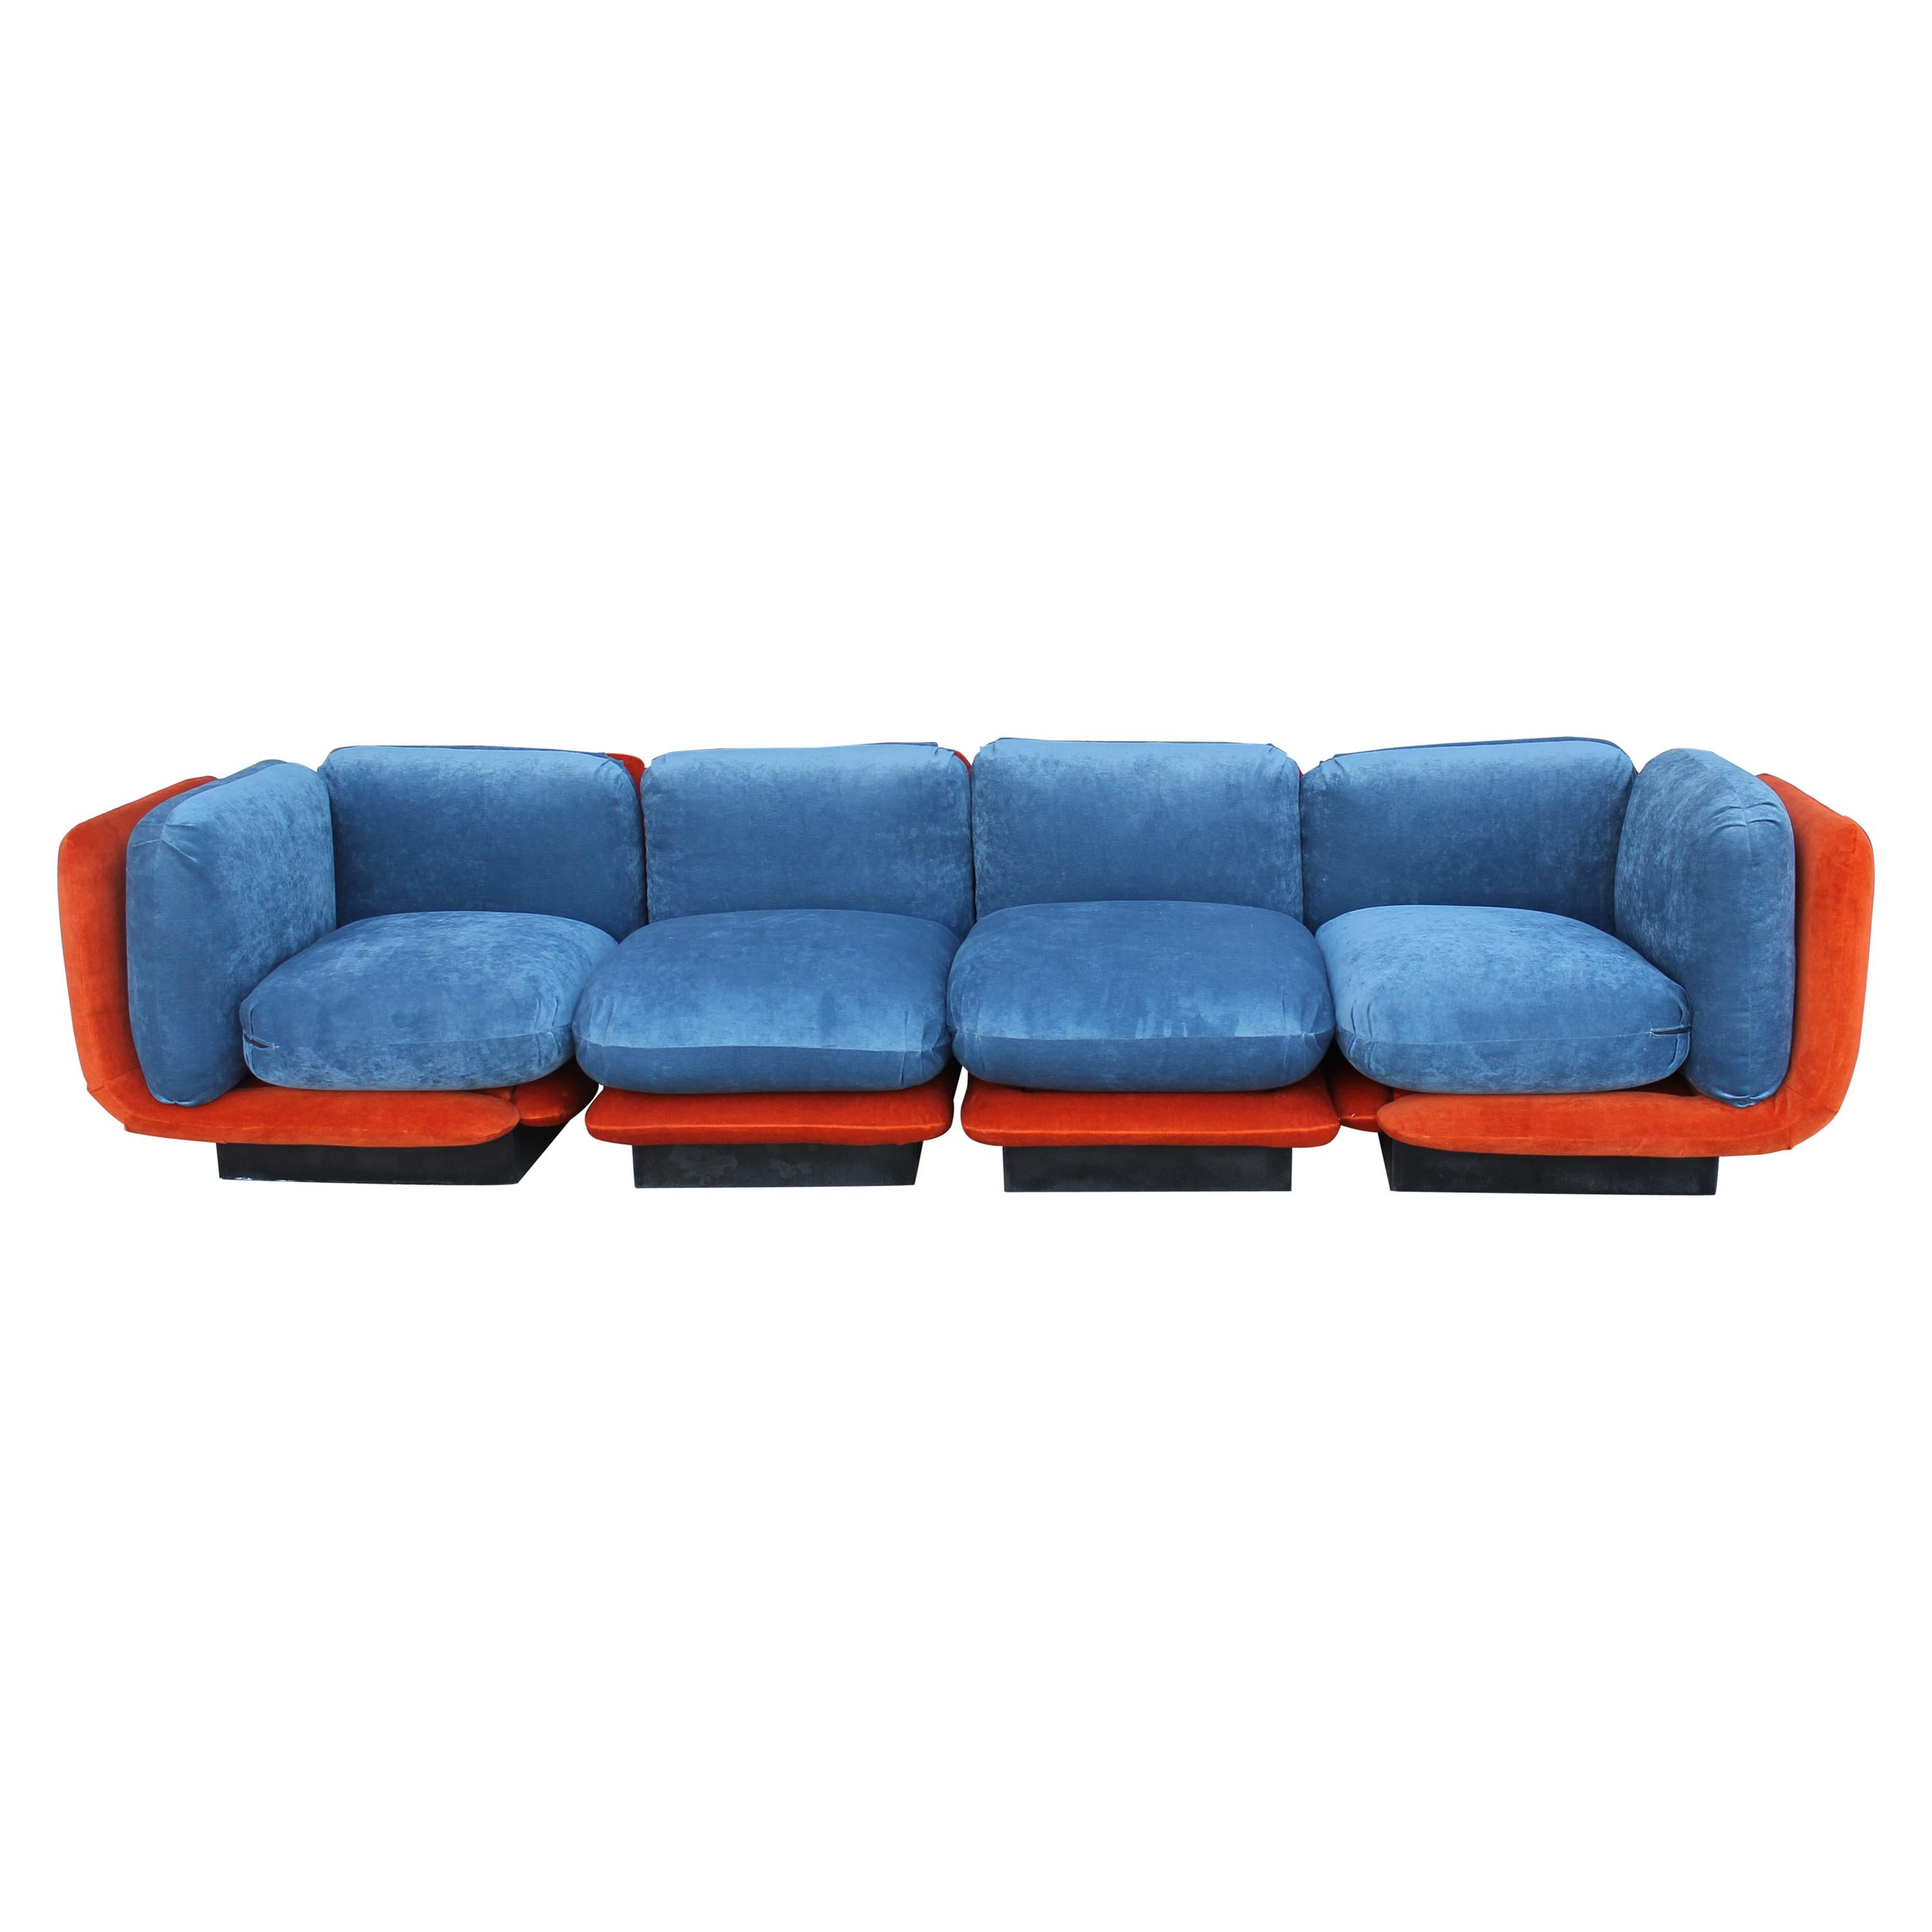 Sectional Couch with Orange and Blue Mohair